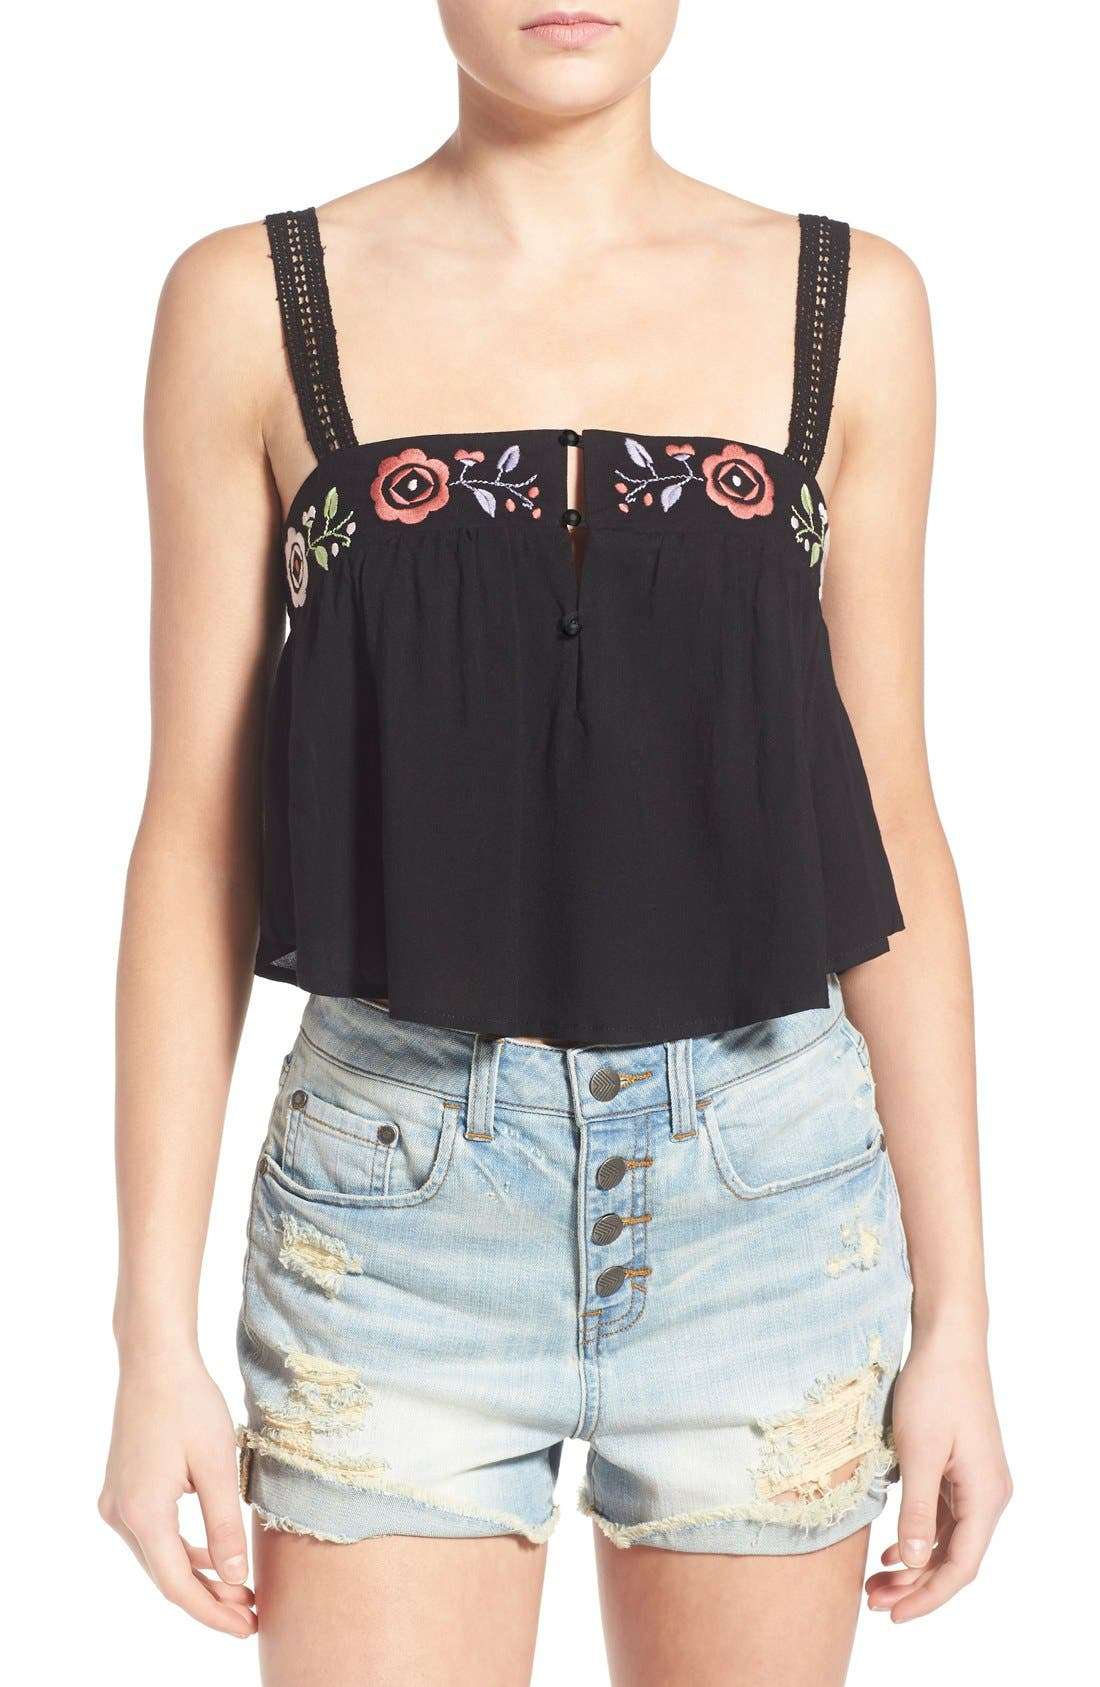 Main Image - Somedays Lovin 'Wide Eyes' Embroidered Crop Top